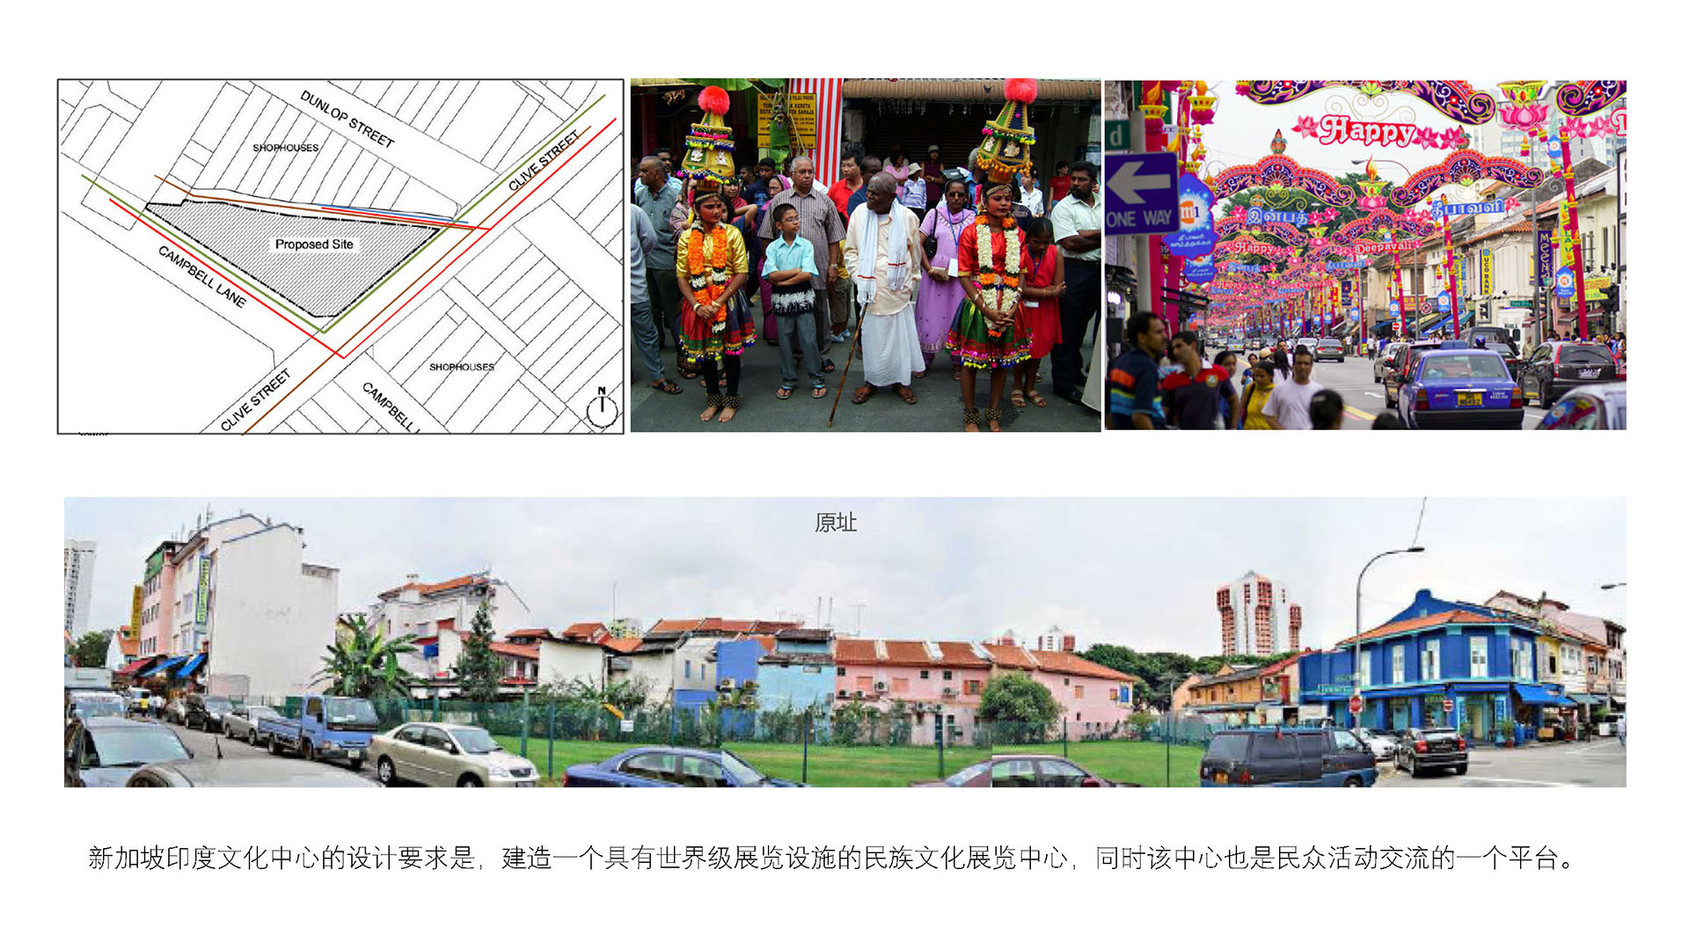 INDIAN-HERITAGE-CENTER-OF-SINGAPORE-ZH 0